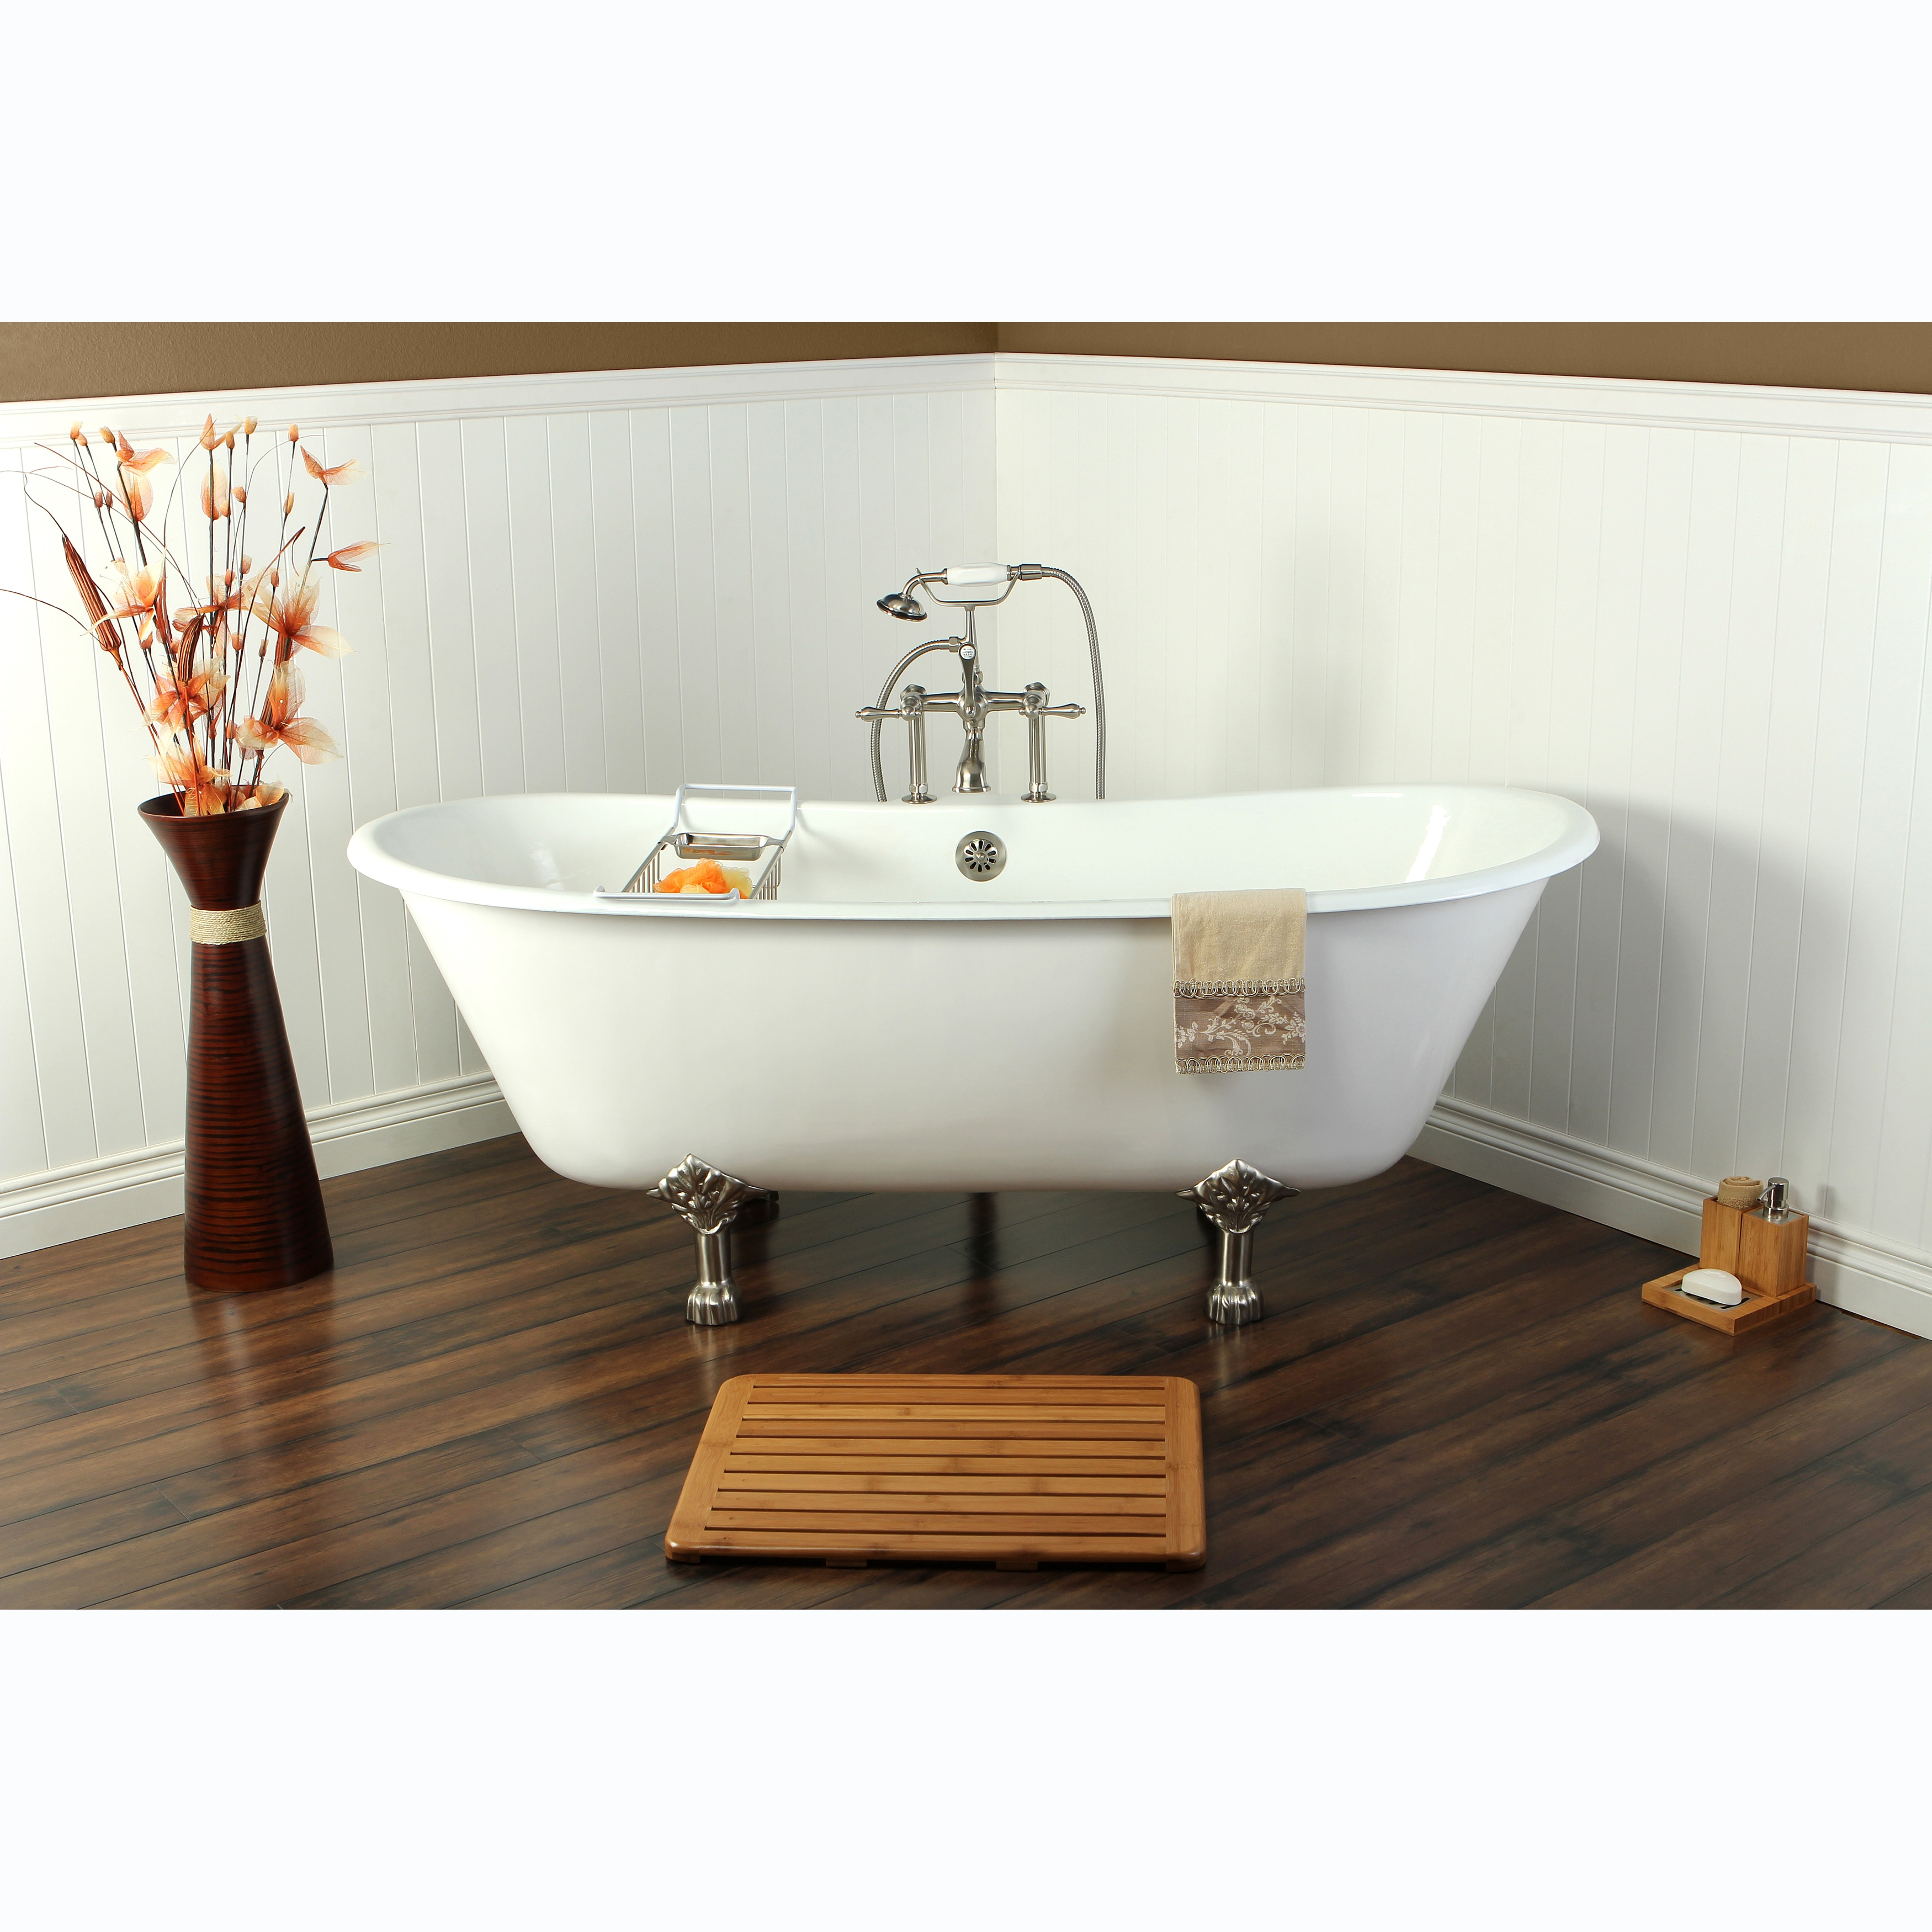 67 Inch Cast Iron Double Slipper Clawfoot Bathtub